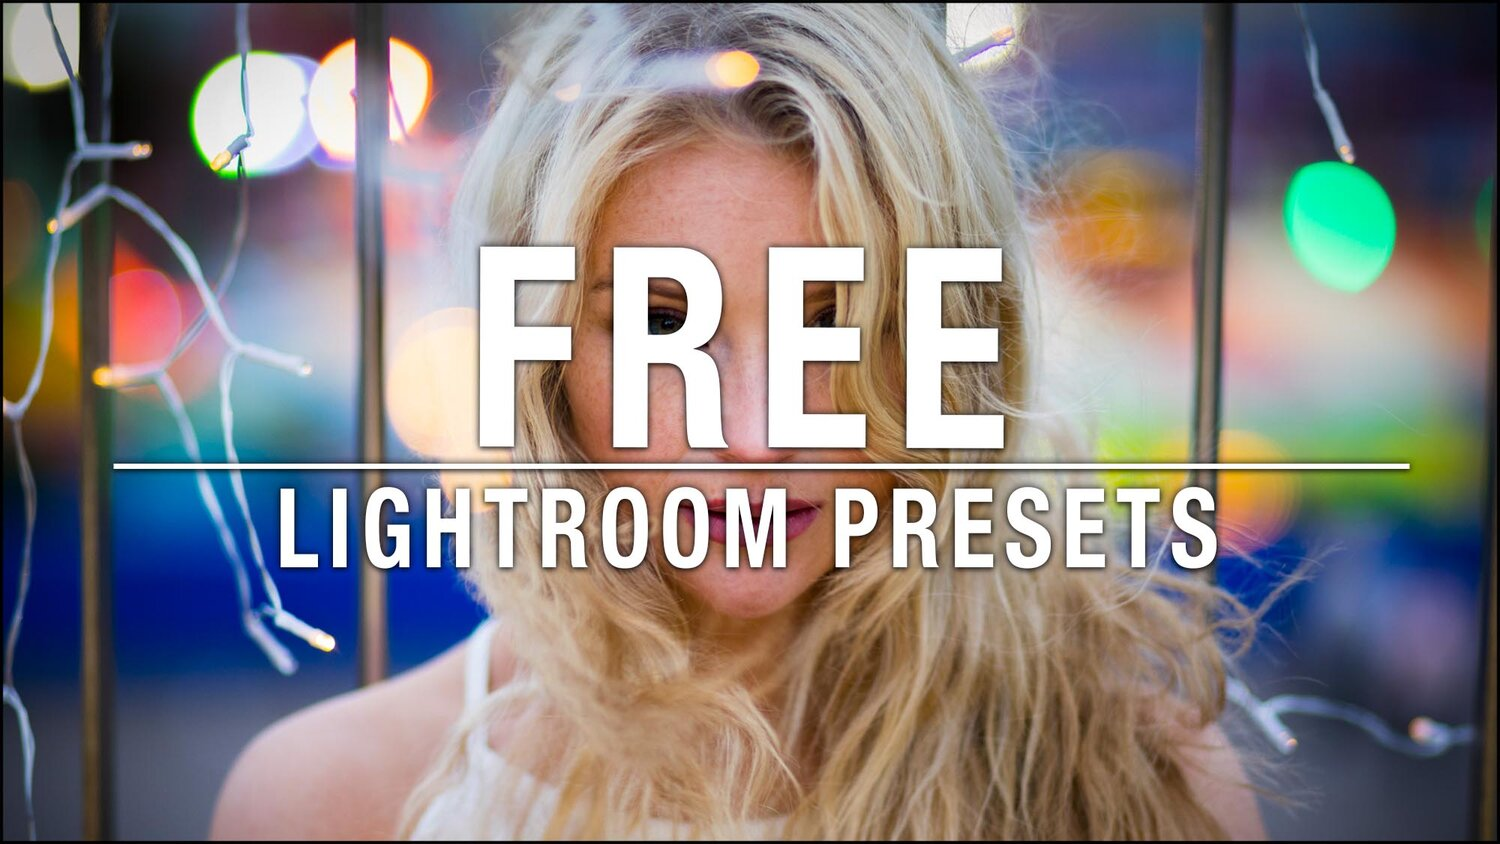 Free Lightroom Presets — The School of Photography - Courses